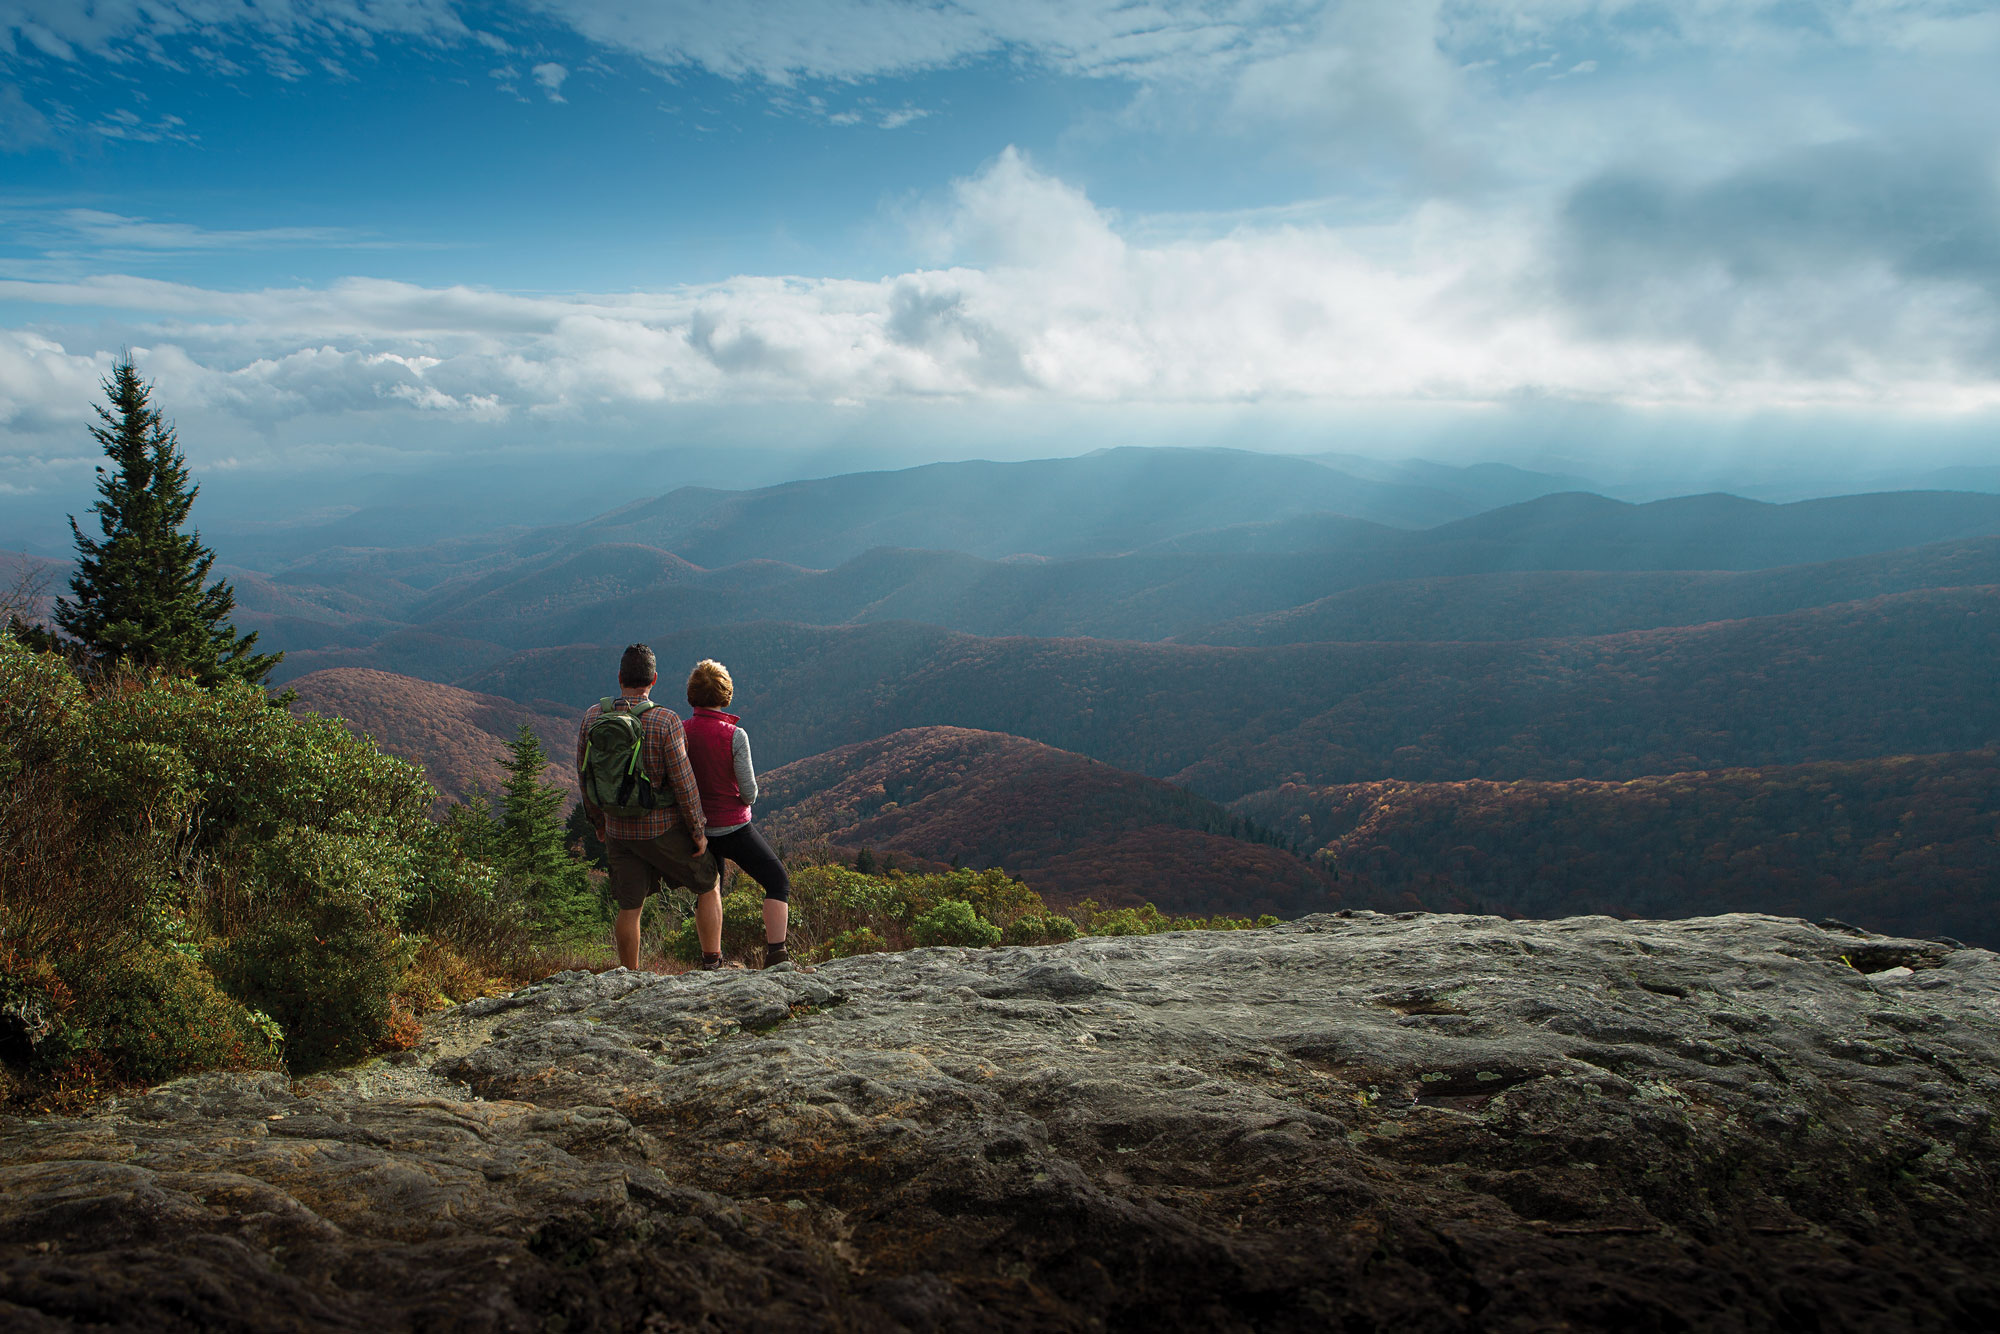 The Cliffs Couple Hiking in the Blue Ridge Mountains